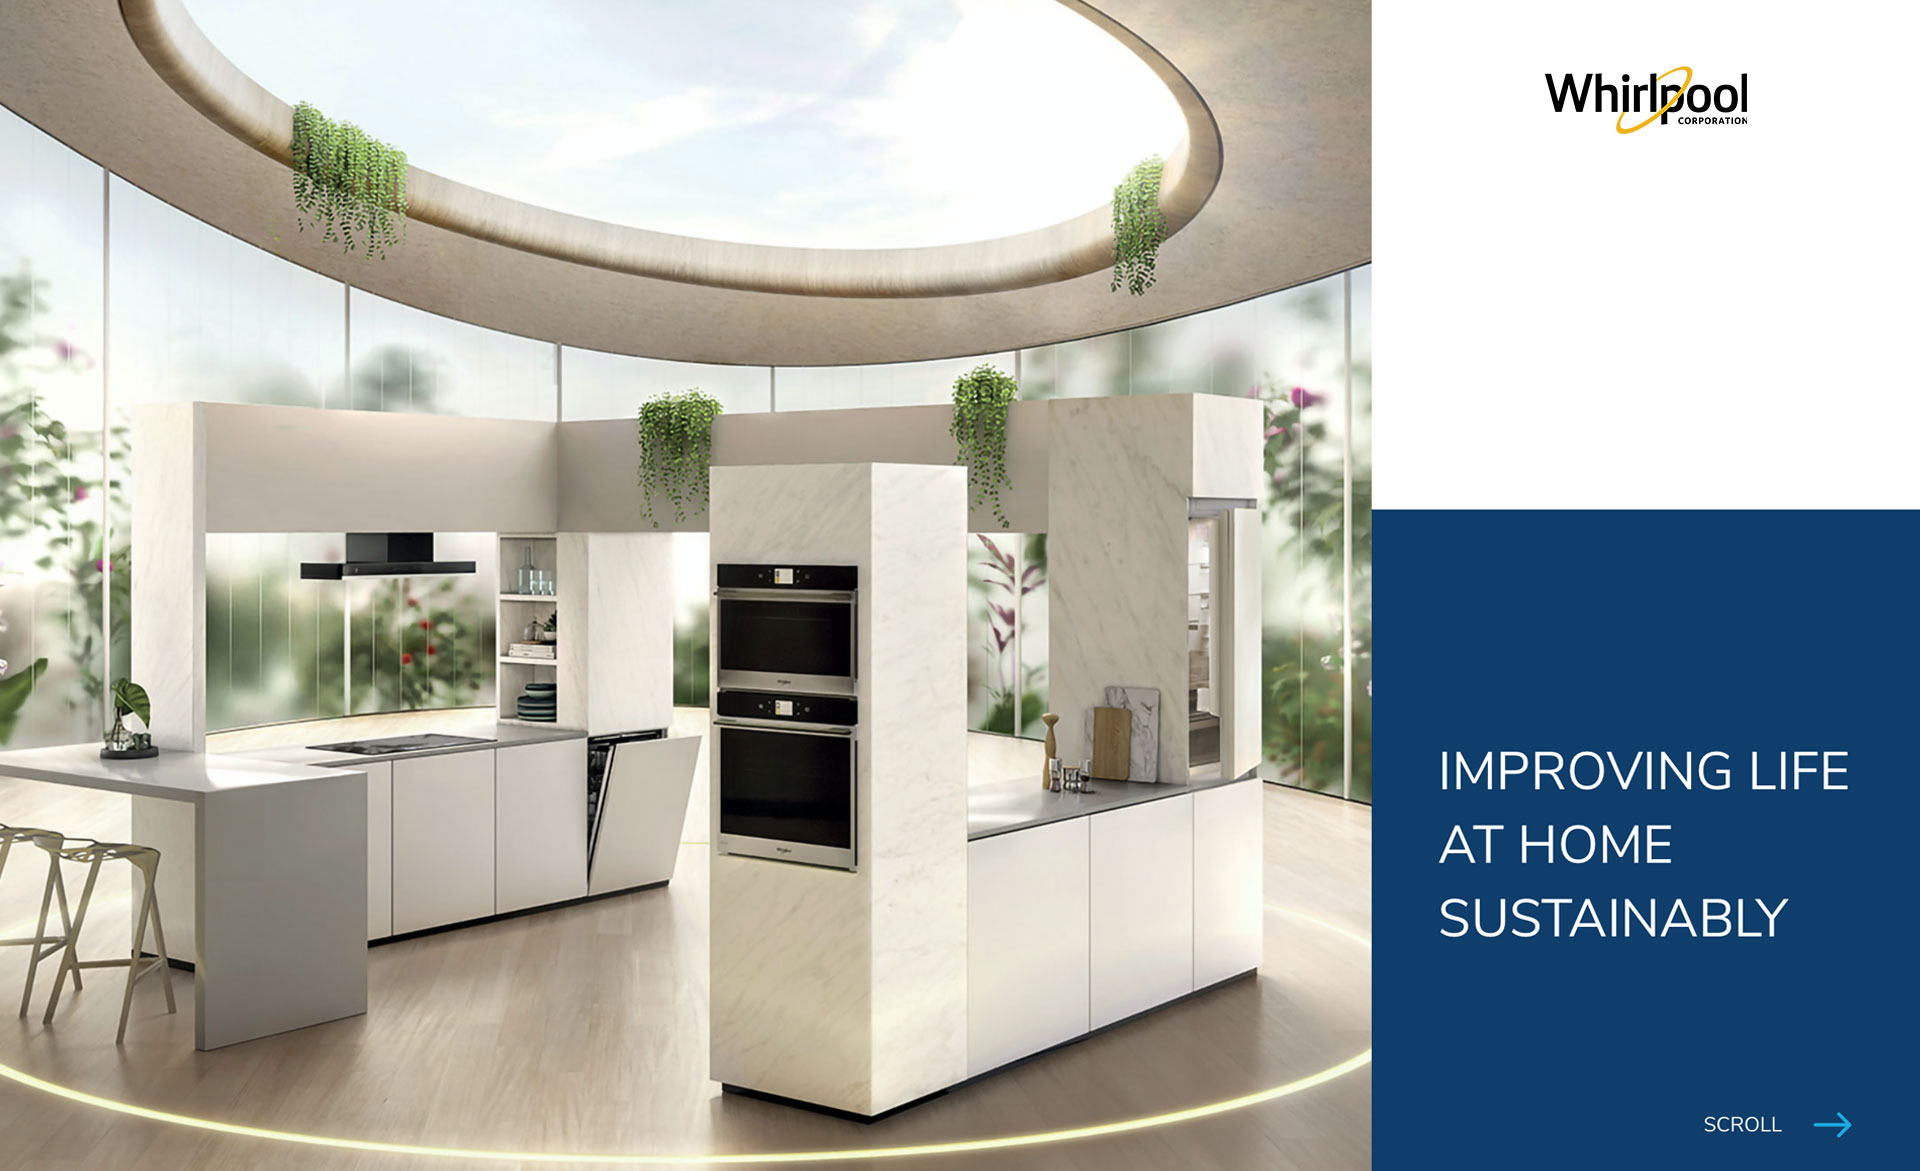 Whirlpool Corp 2020 Sustainability Report